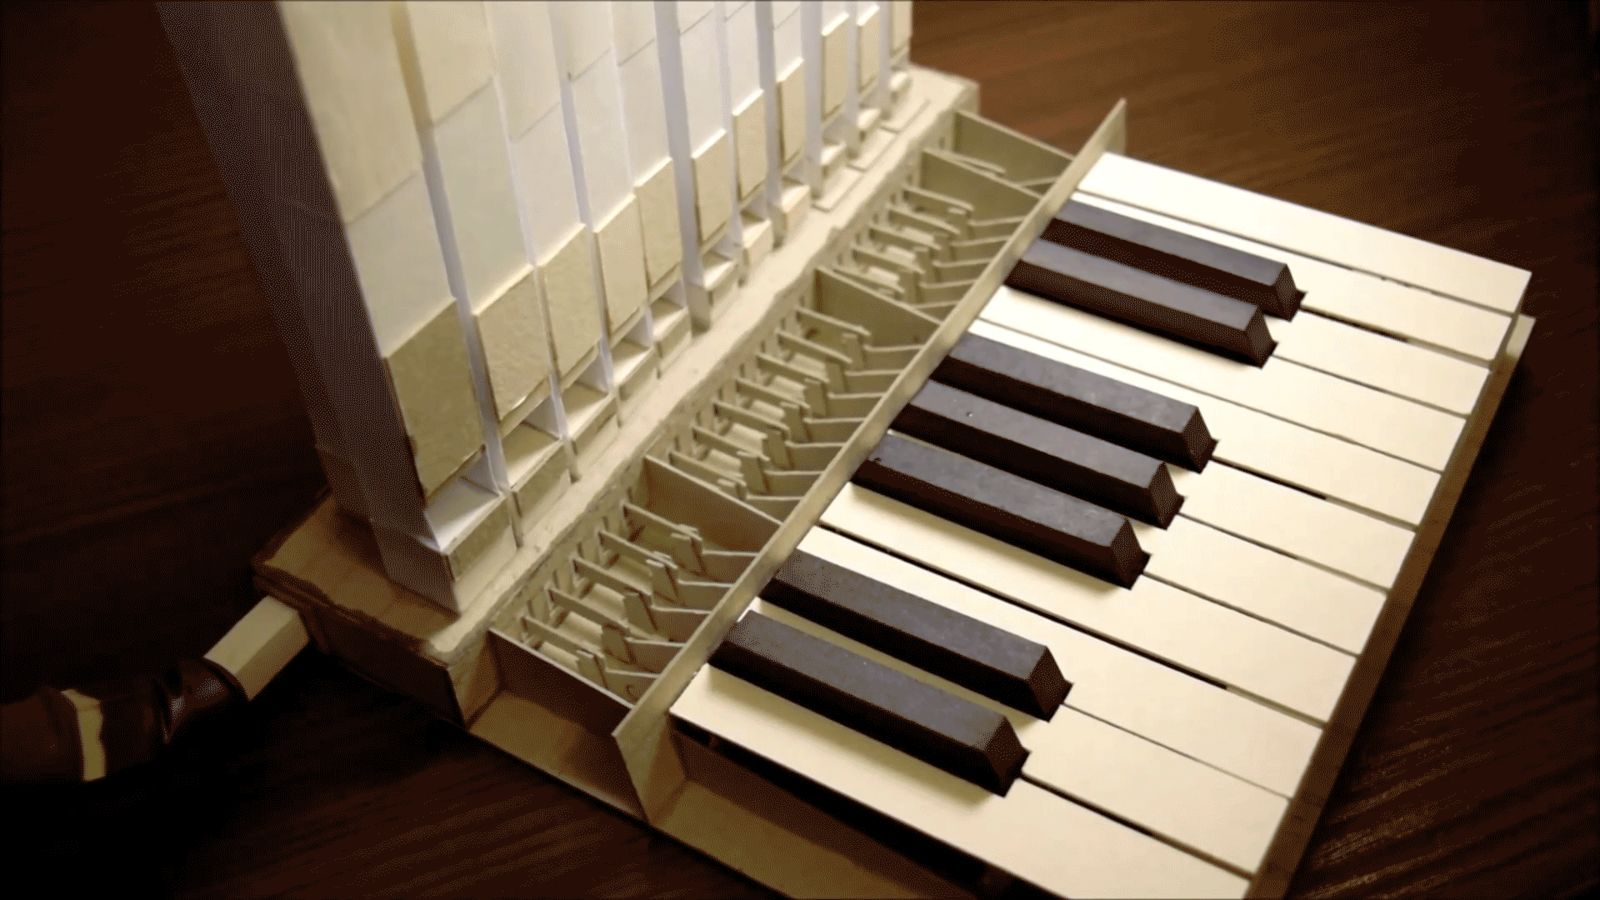 A pipe organ cancost more than $200,000 and weigh thousands of pounds. Not this instrument. The paper organ built by master craftsman Aliaksei Zholner costs and weights only a fraction of that—and it works just like the real thing.